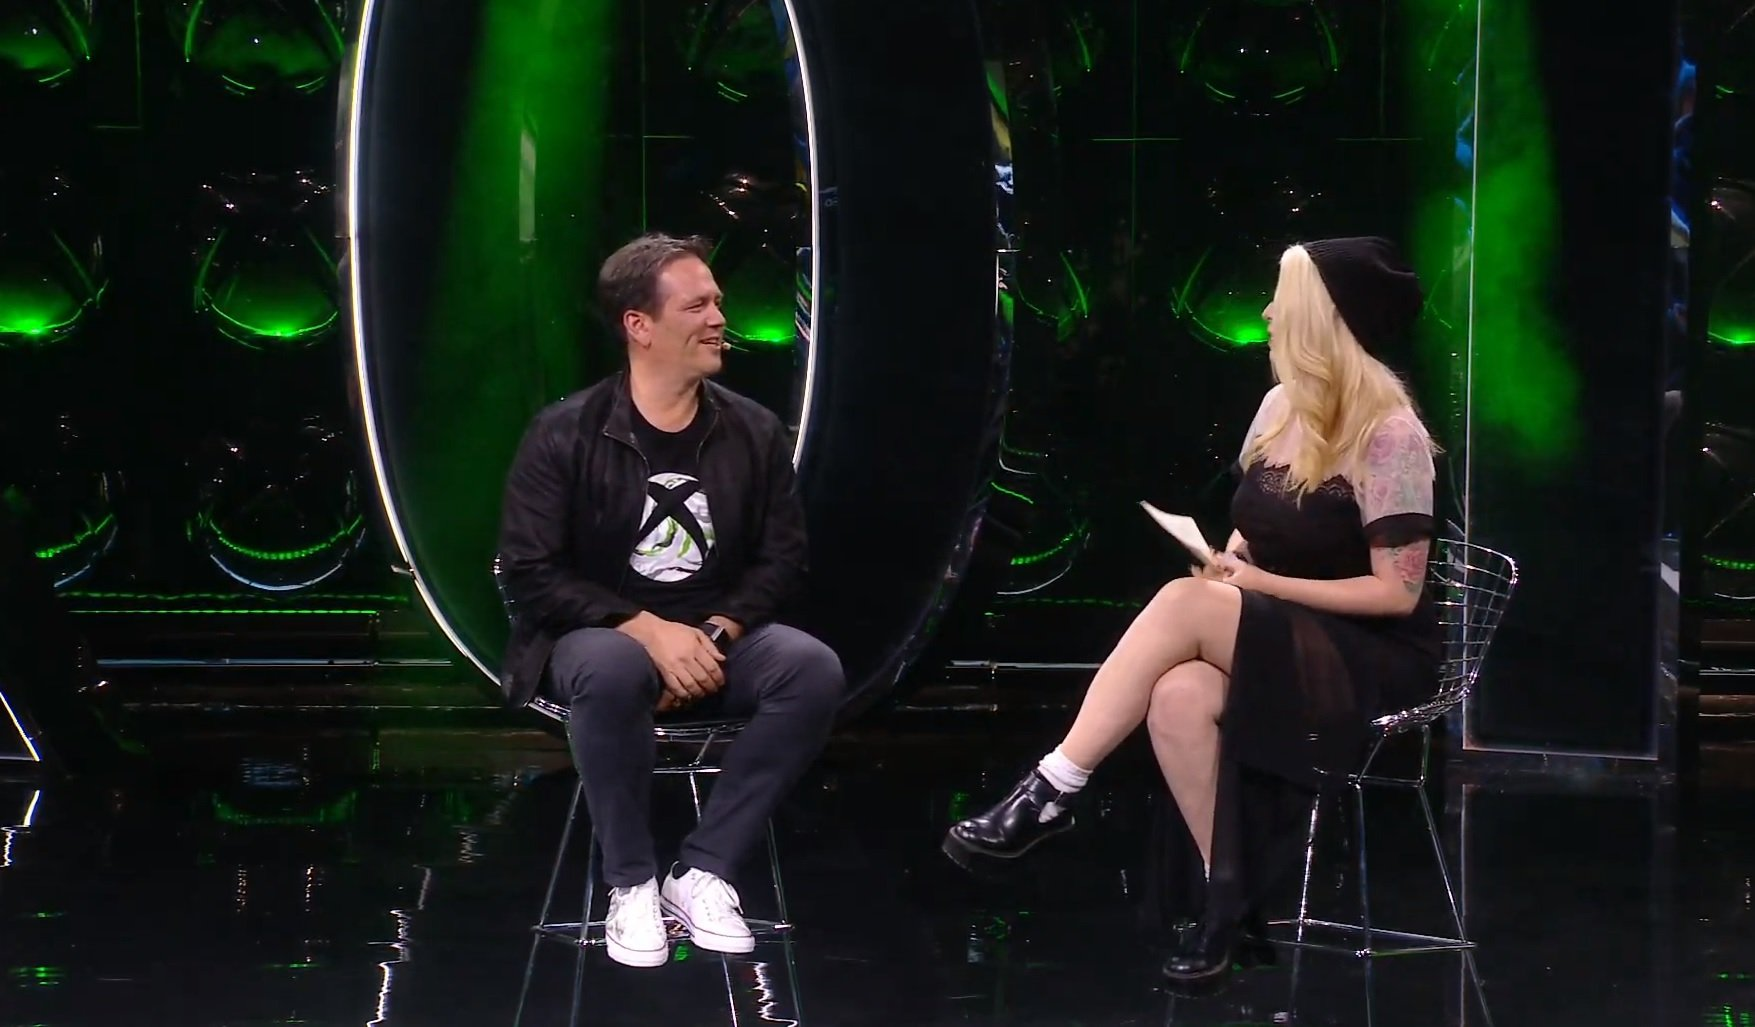 Remember all that stuff Xbox One did wrong at launch? Phil Spencer would rather not do that again screenshot